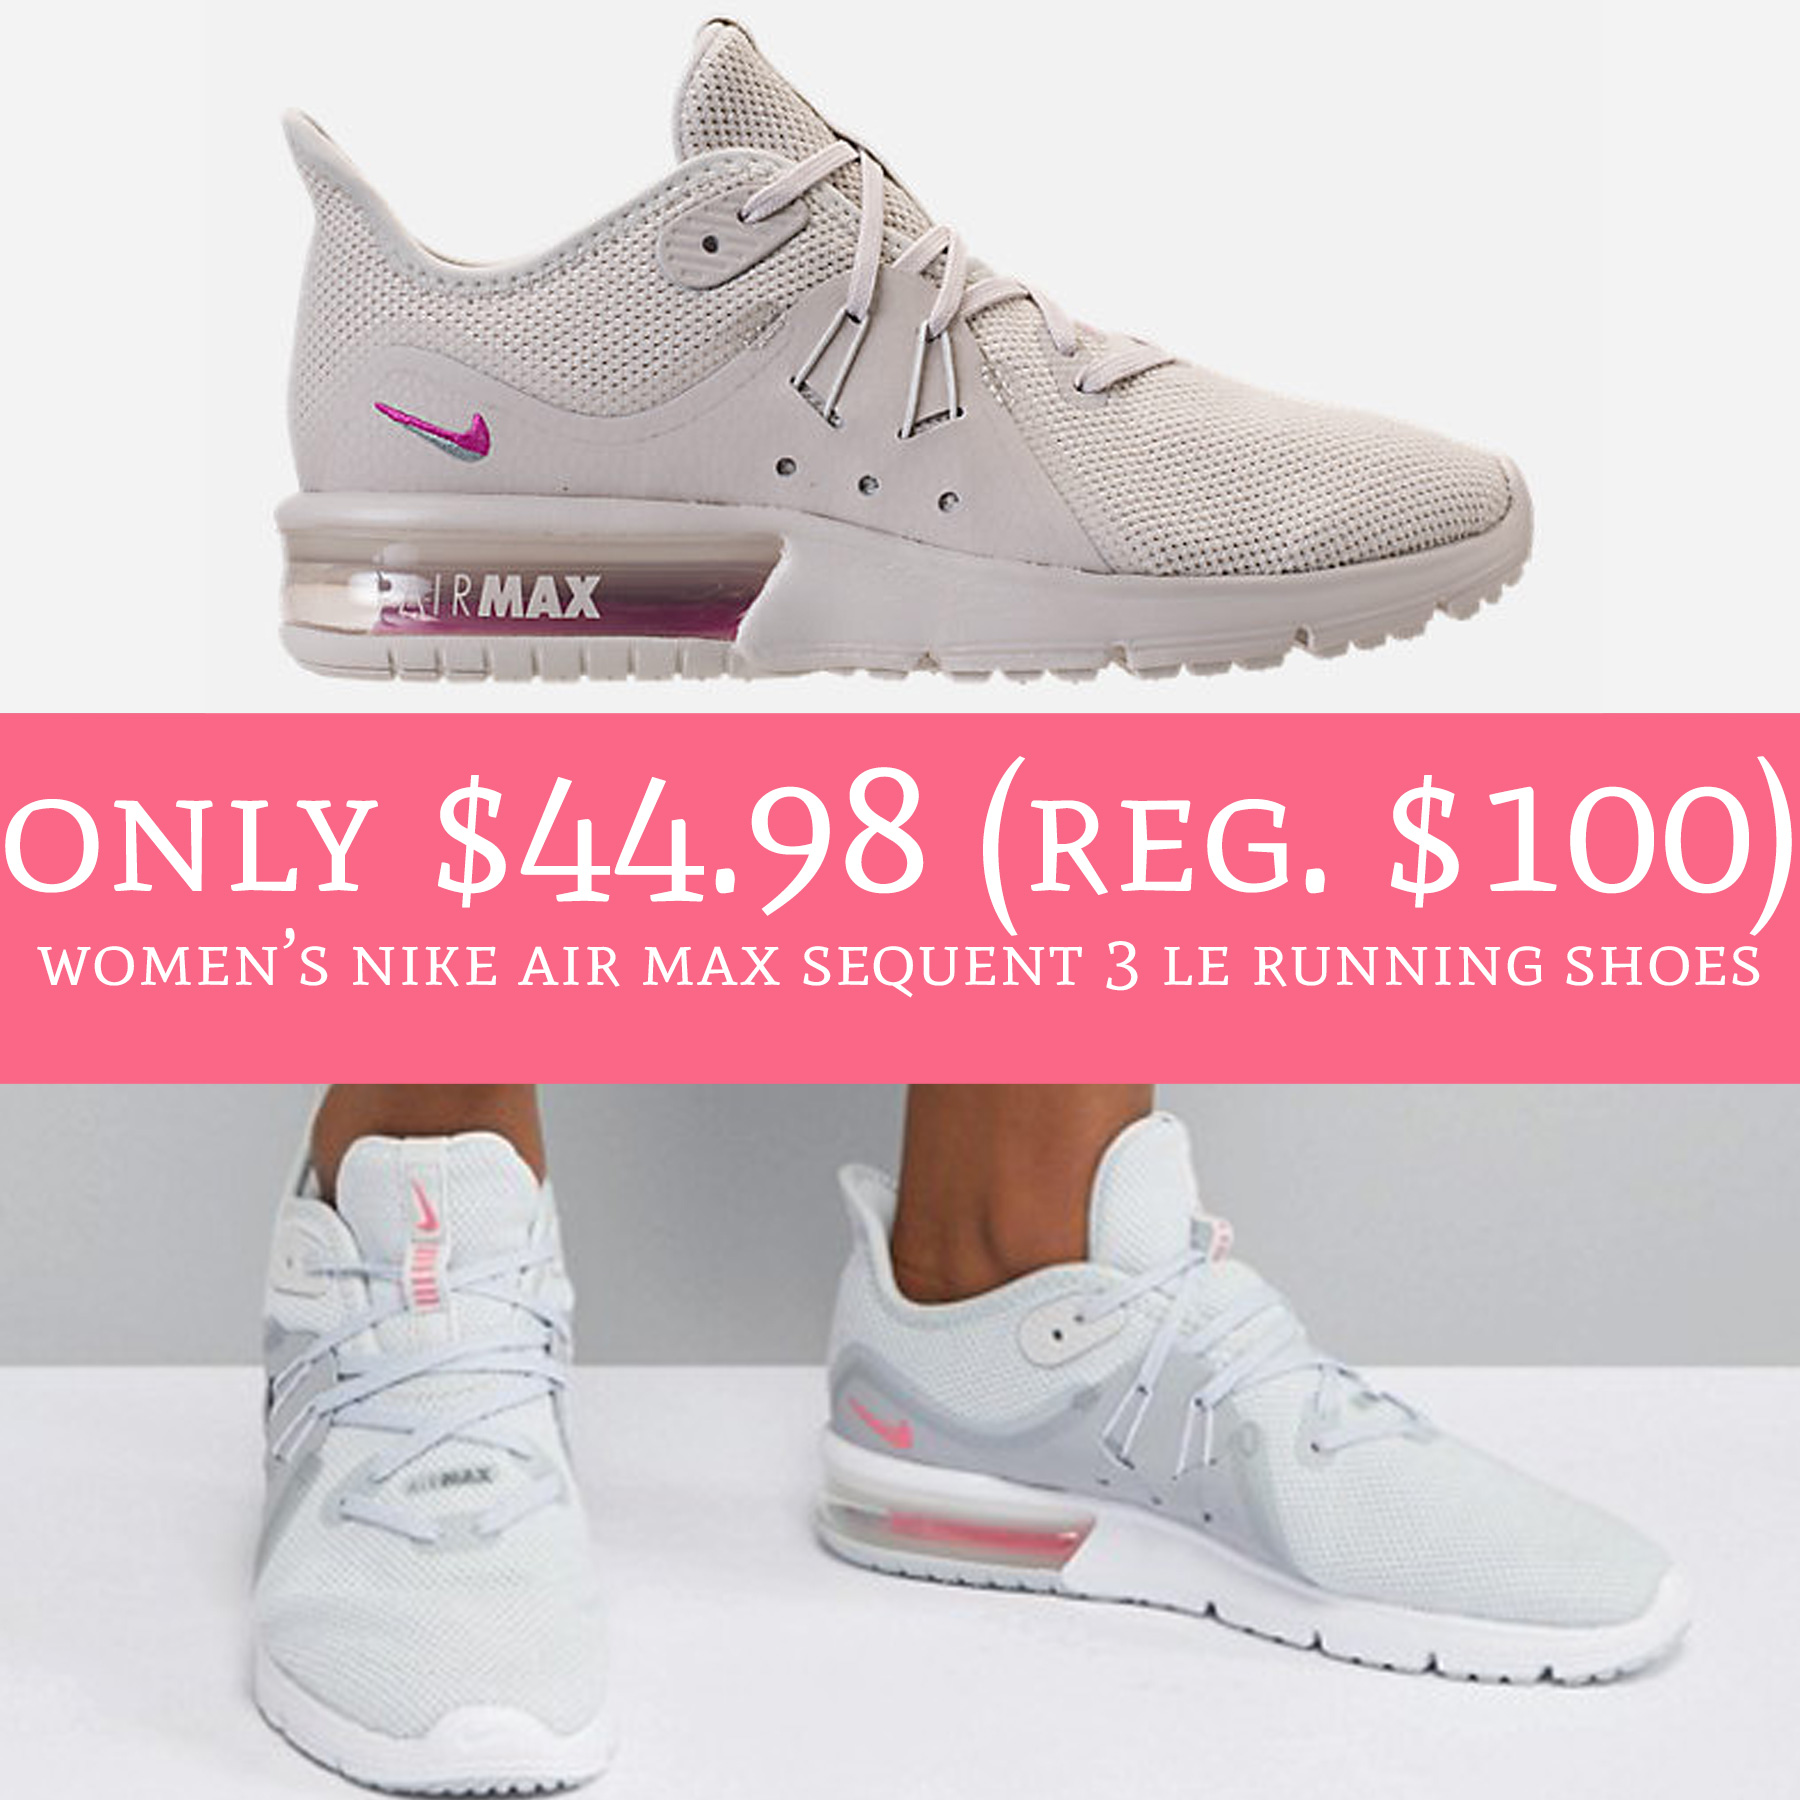 new products 52d86 2ed05 $44.98 (Reg. $100) Women's Nike Air Max Sequent 3 LE Running ...